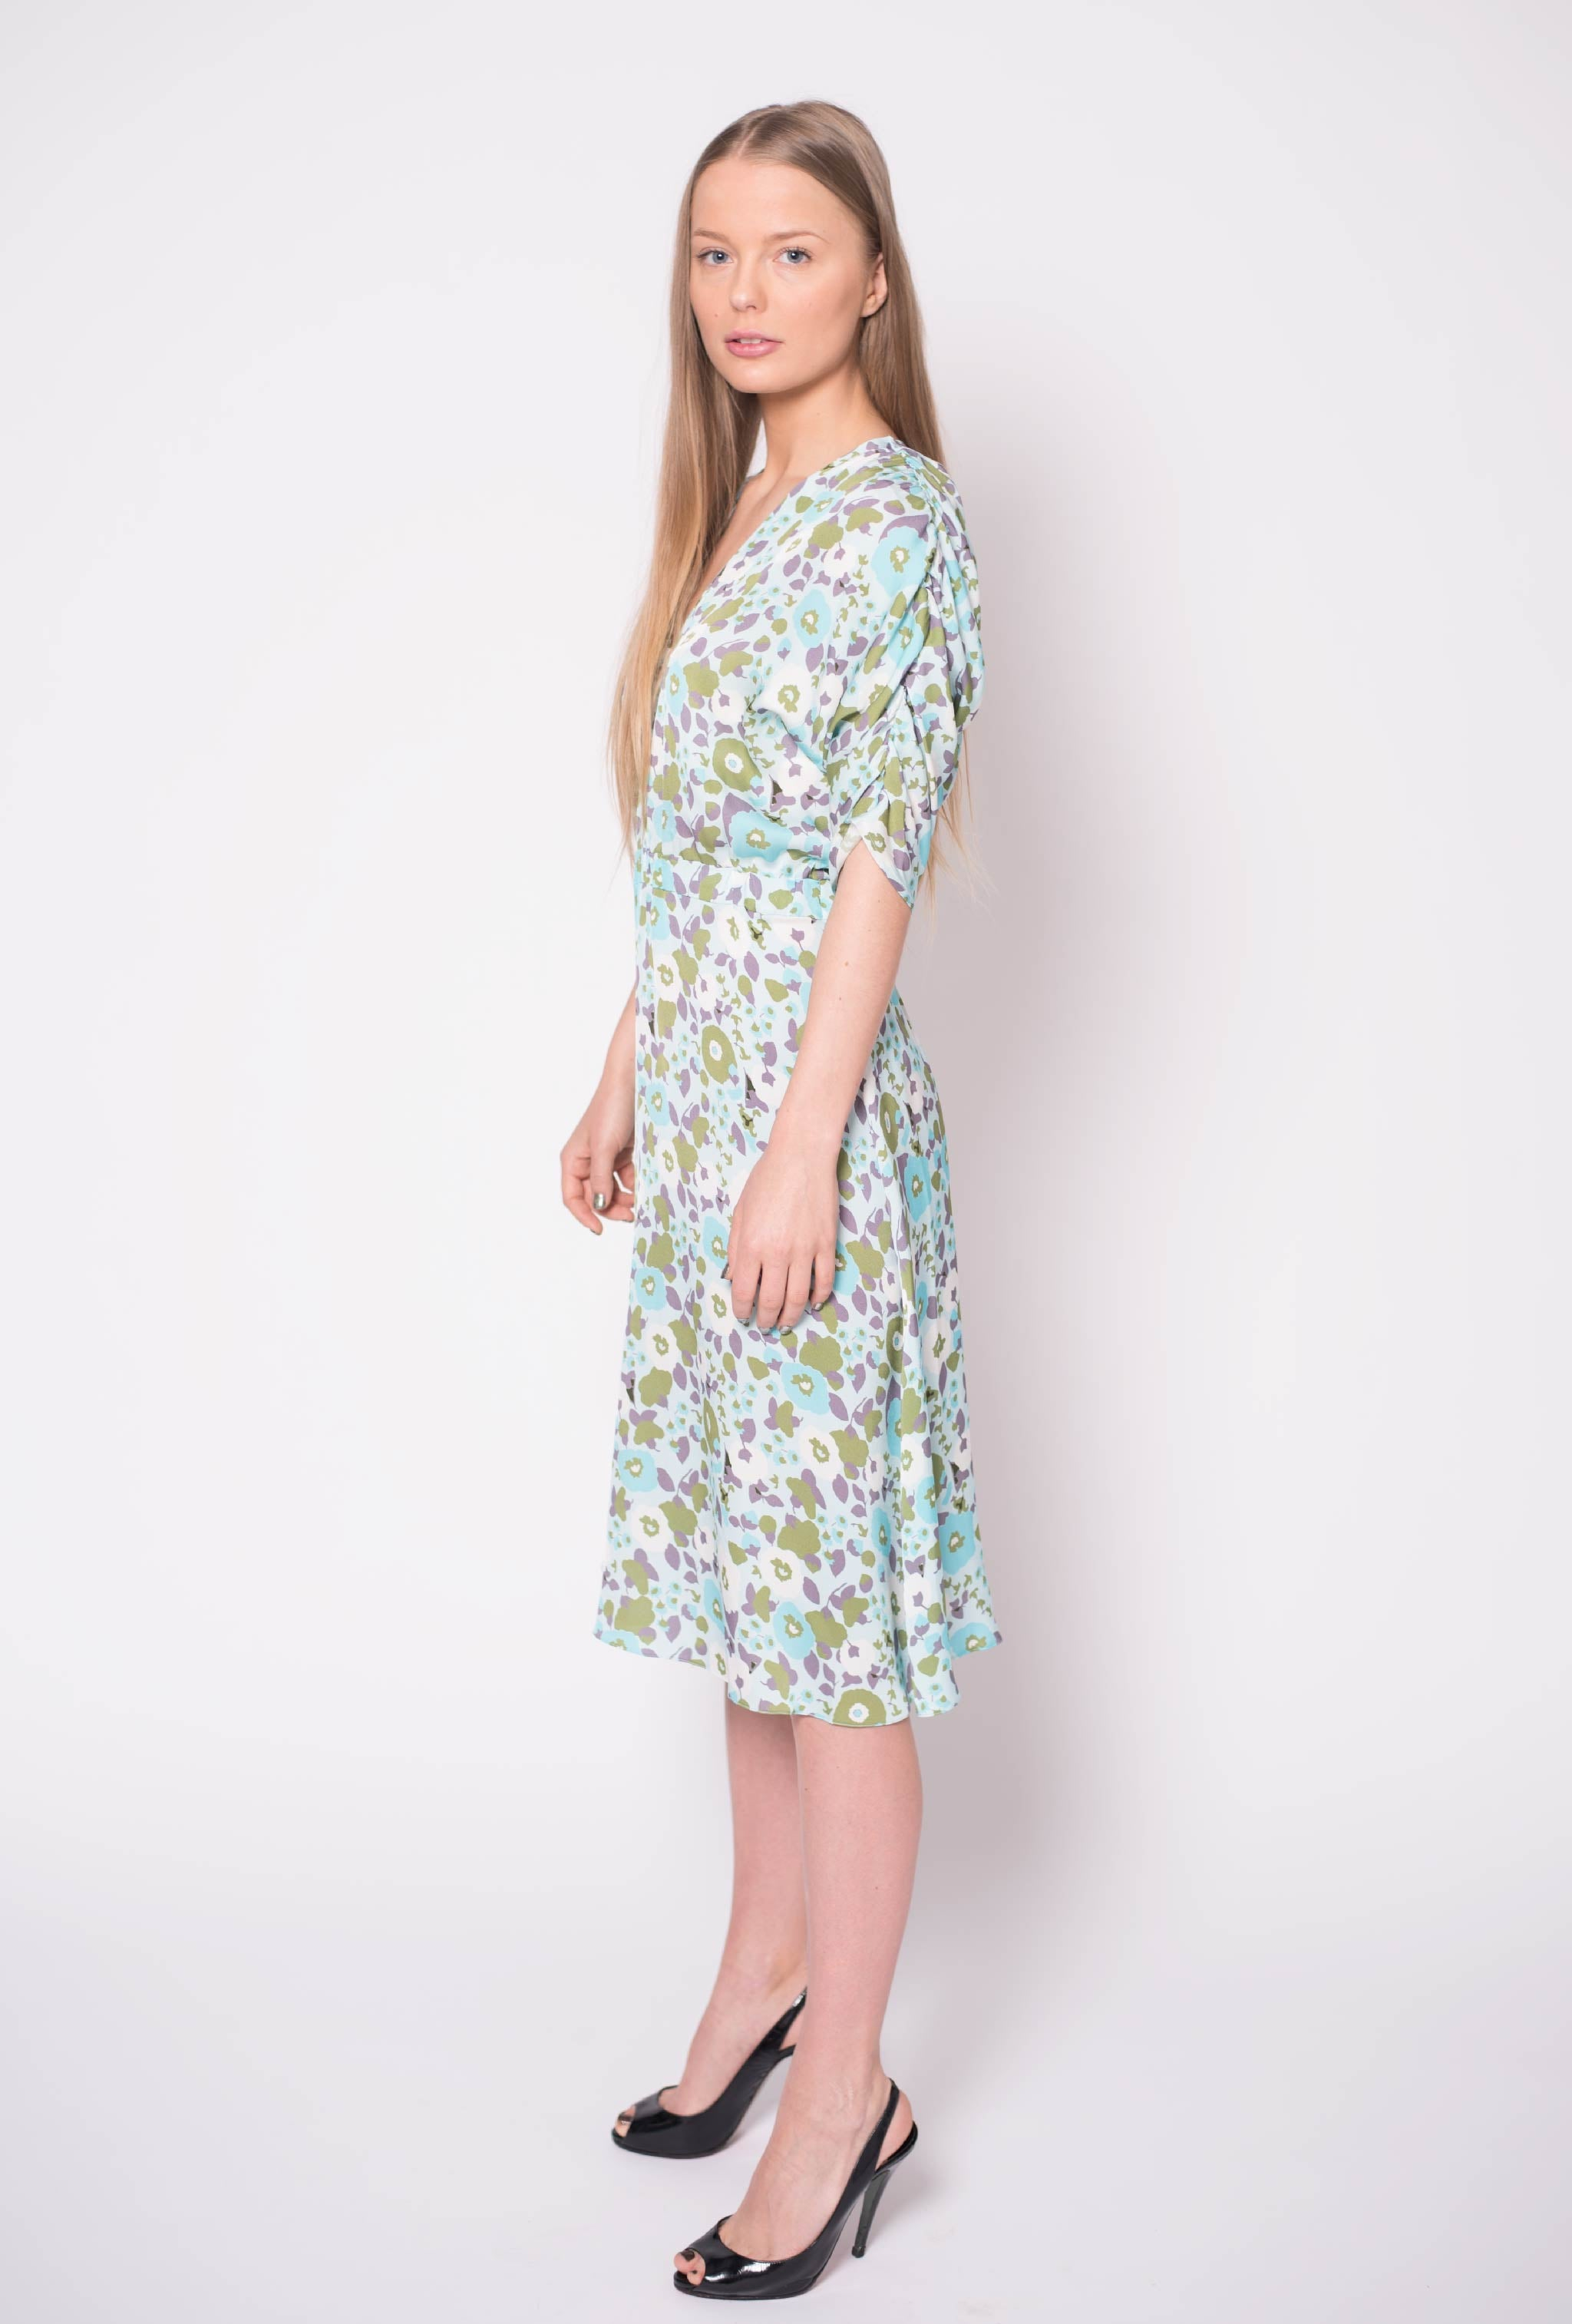 The Market Dress | Dillon's Delightful